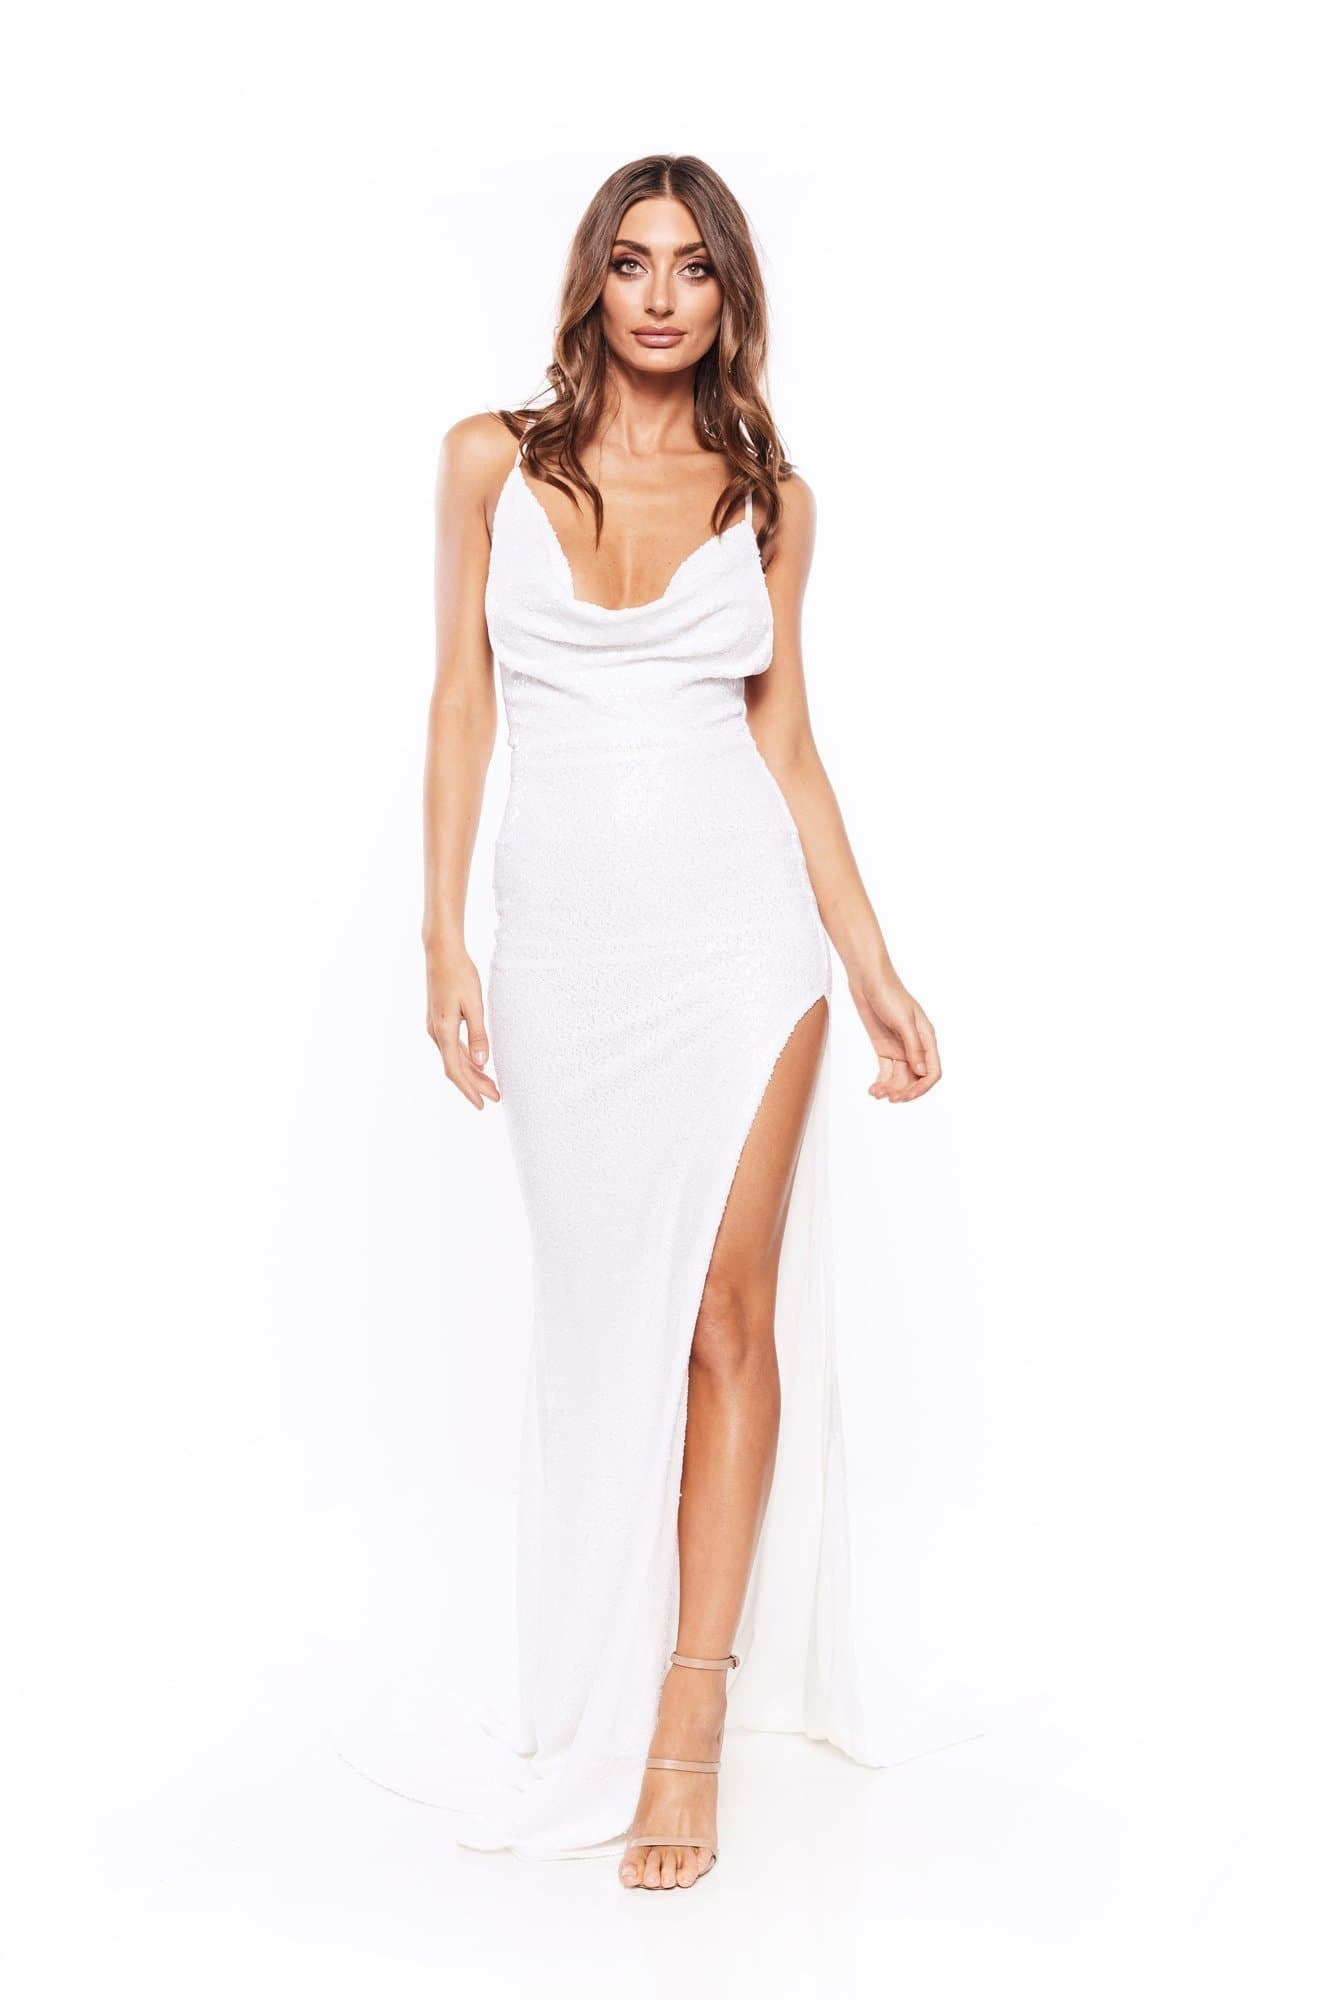 Andriana Sequins Gown - White V Neck Dress with Cowl Neck and Slit